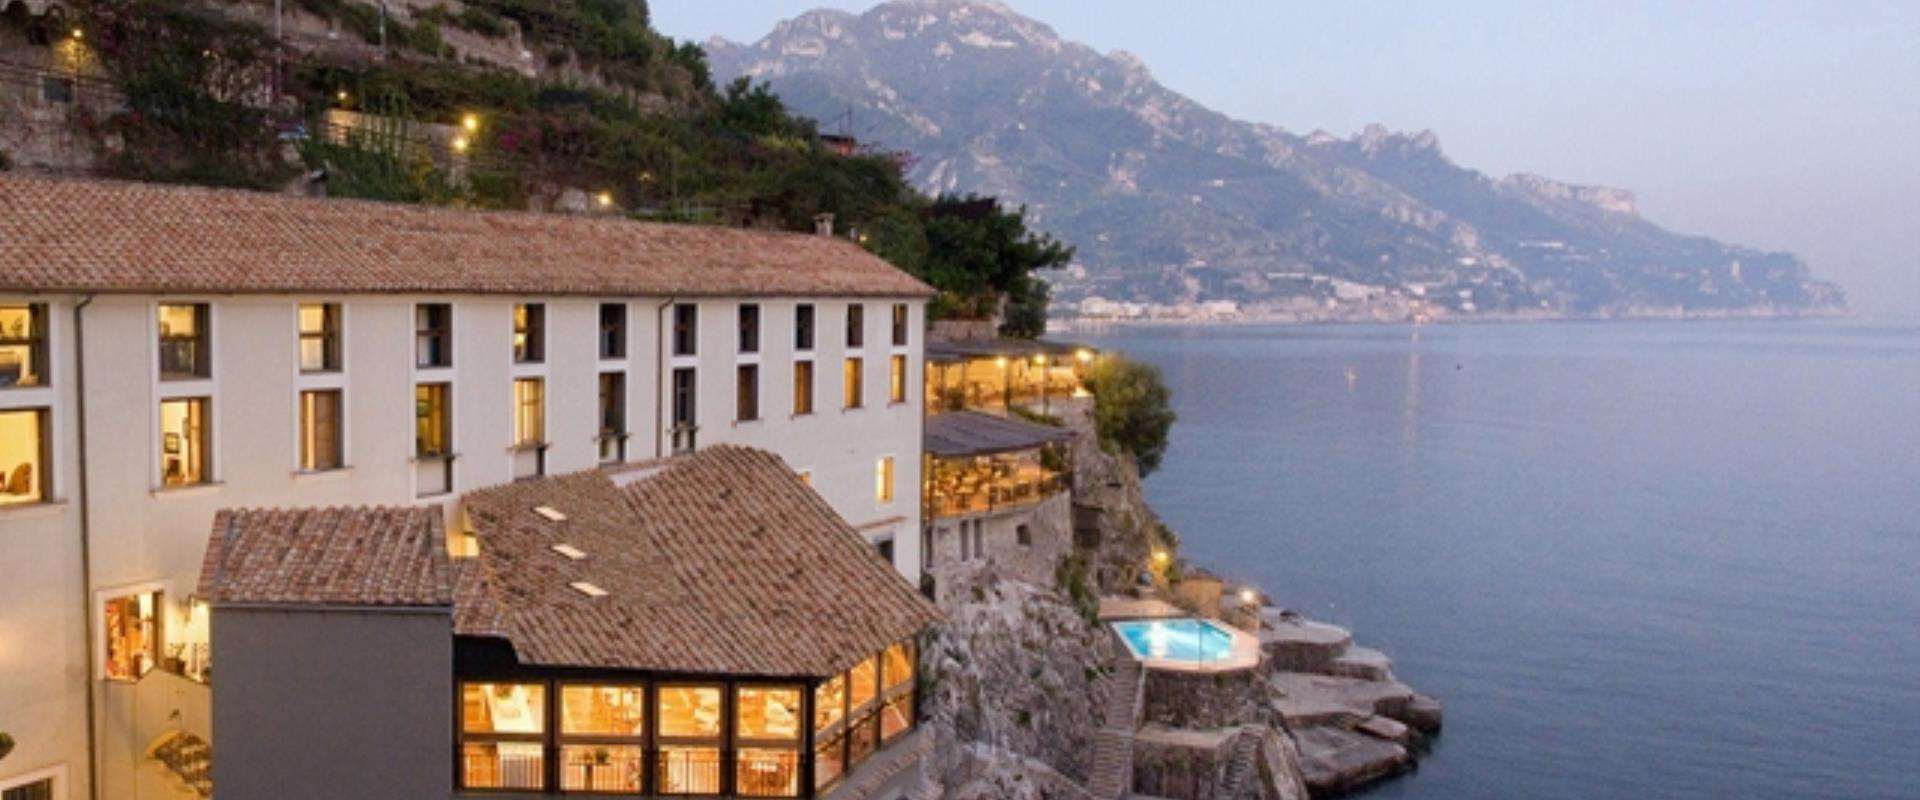 The beauty of the Amalfi Coast directly from the rooms of the BW Hotel Marmorata